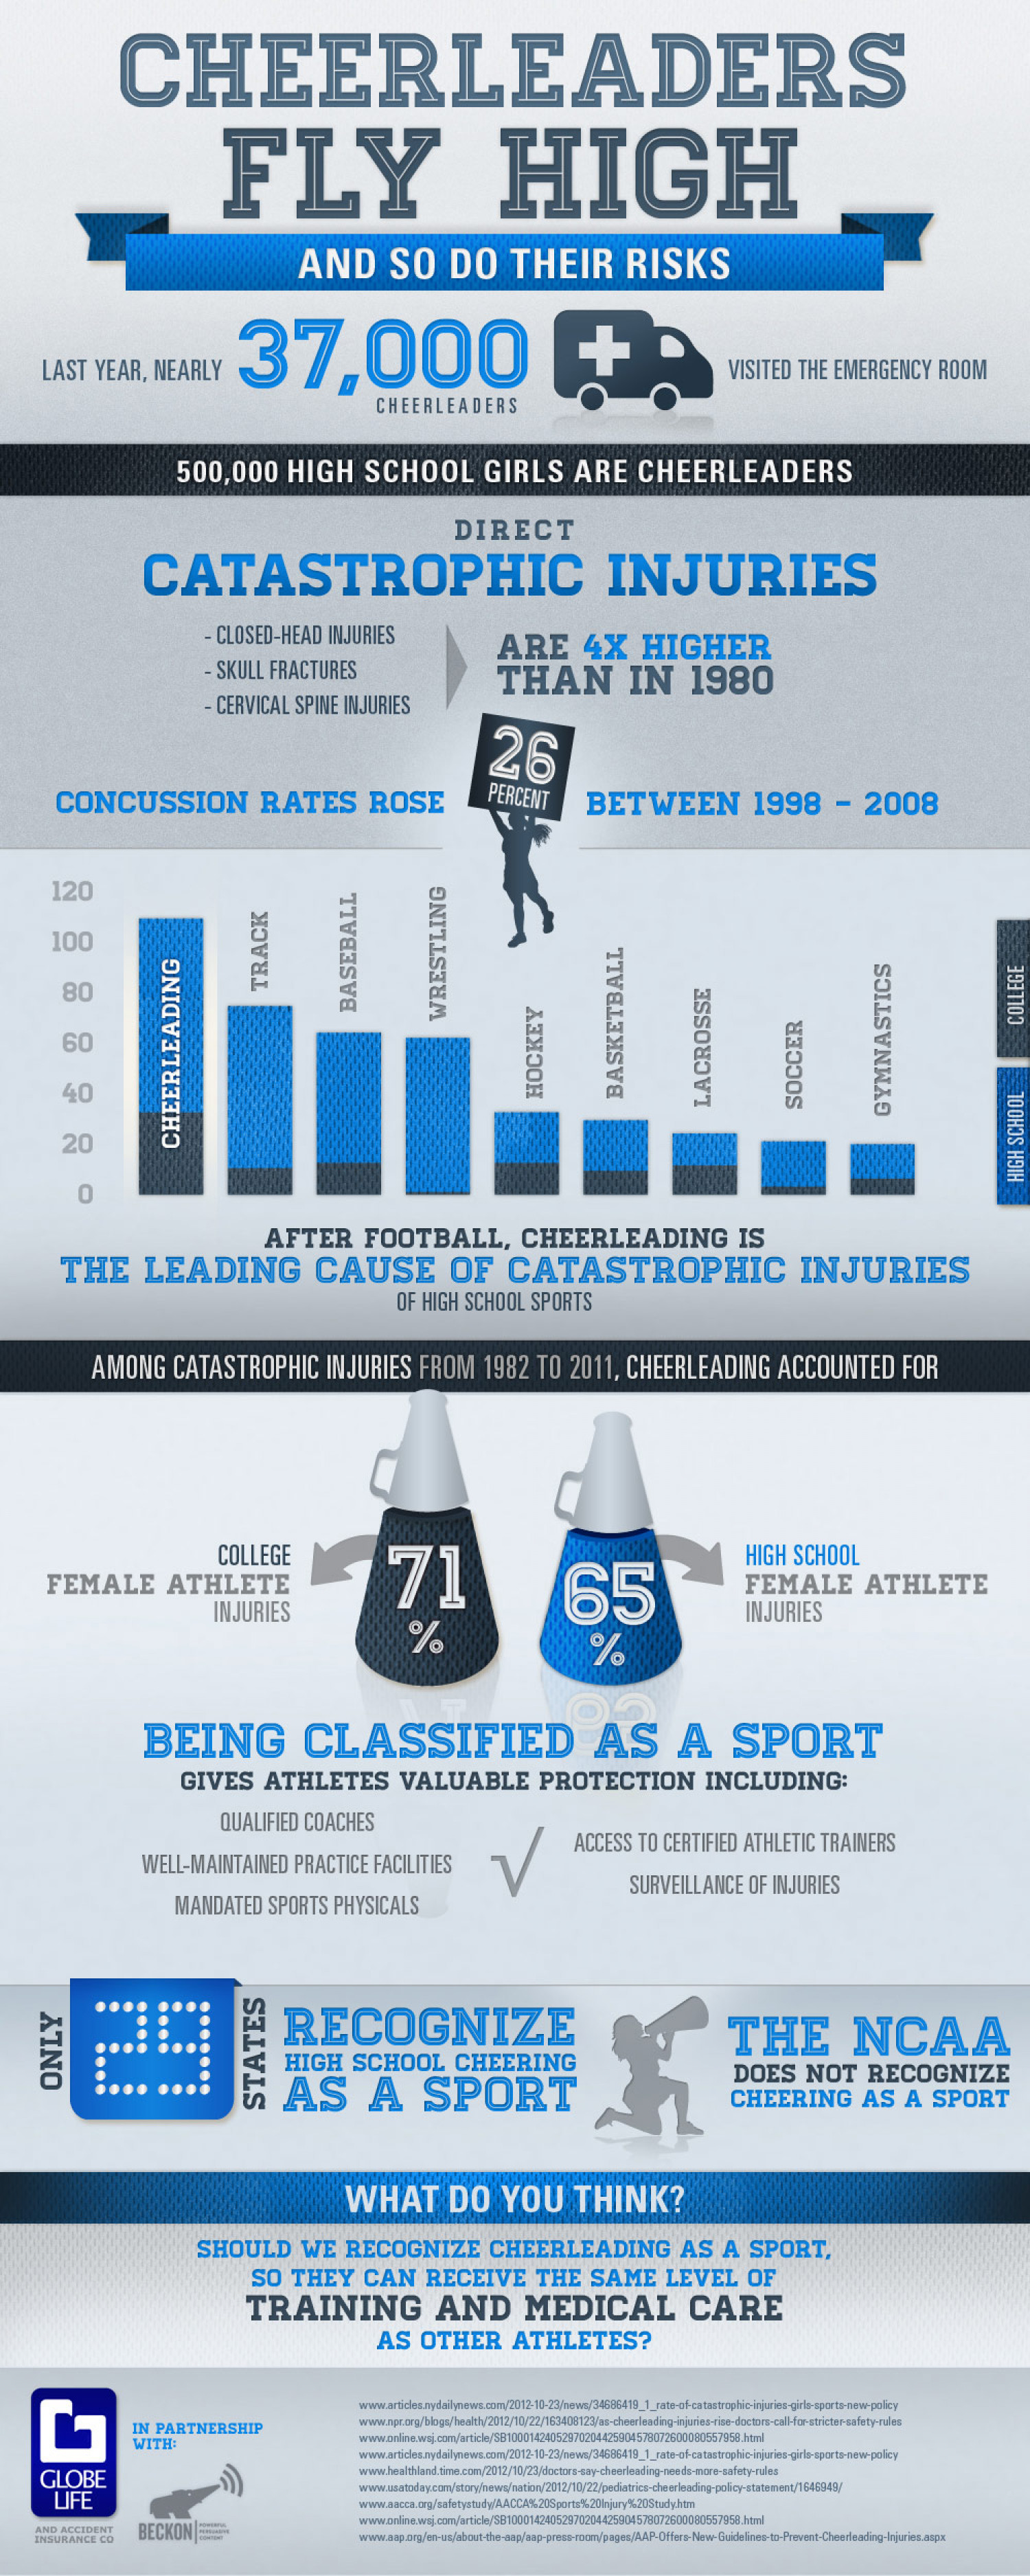 Cheerleaders Fly High And So Do Their Risks Infographic